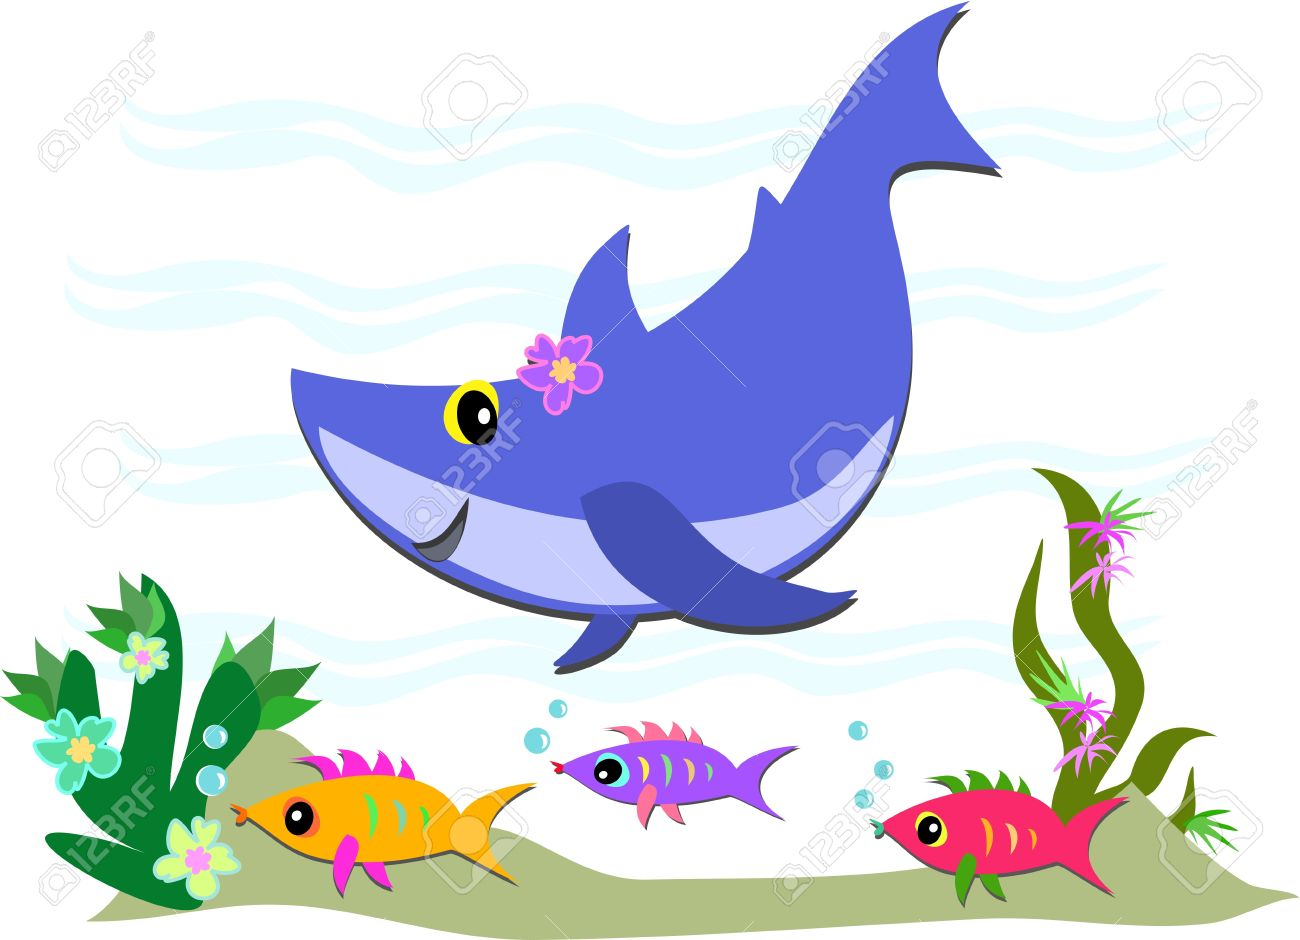 Cute Blue Shark and Fish Friends Stock Vector - 9241920